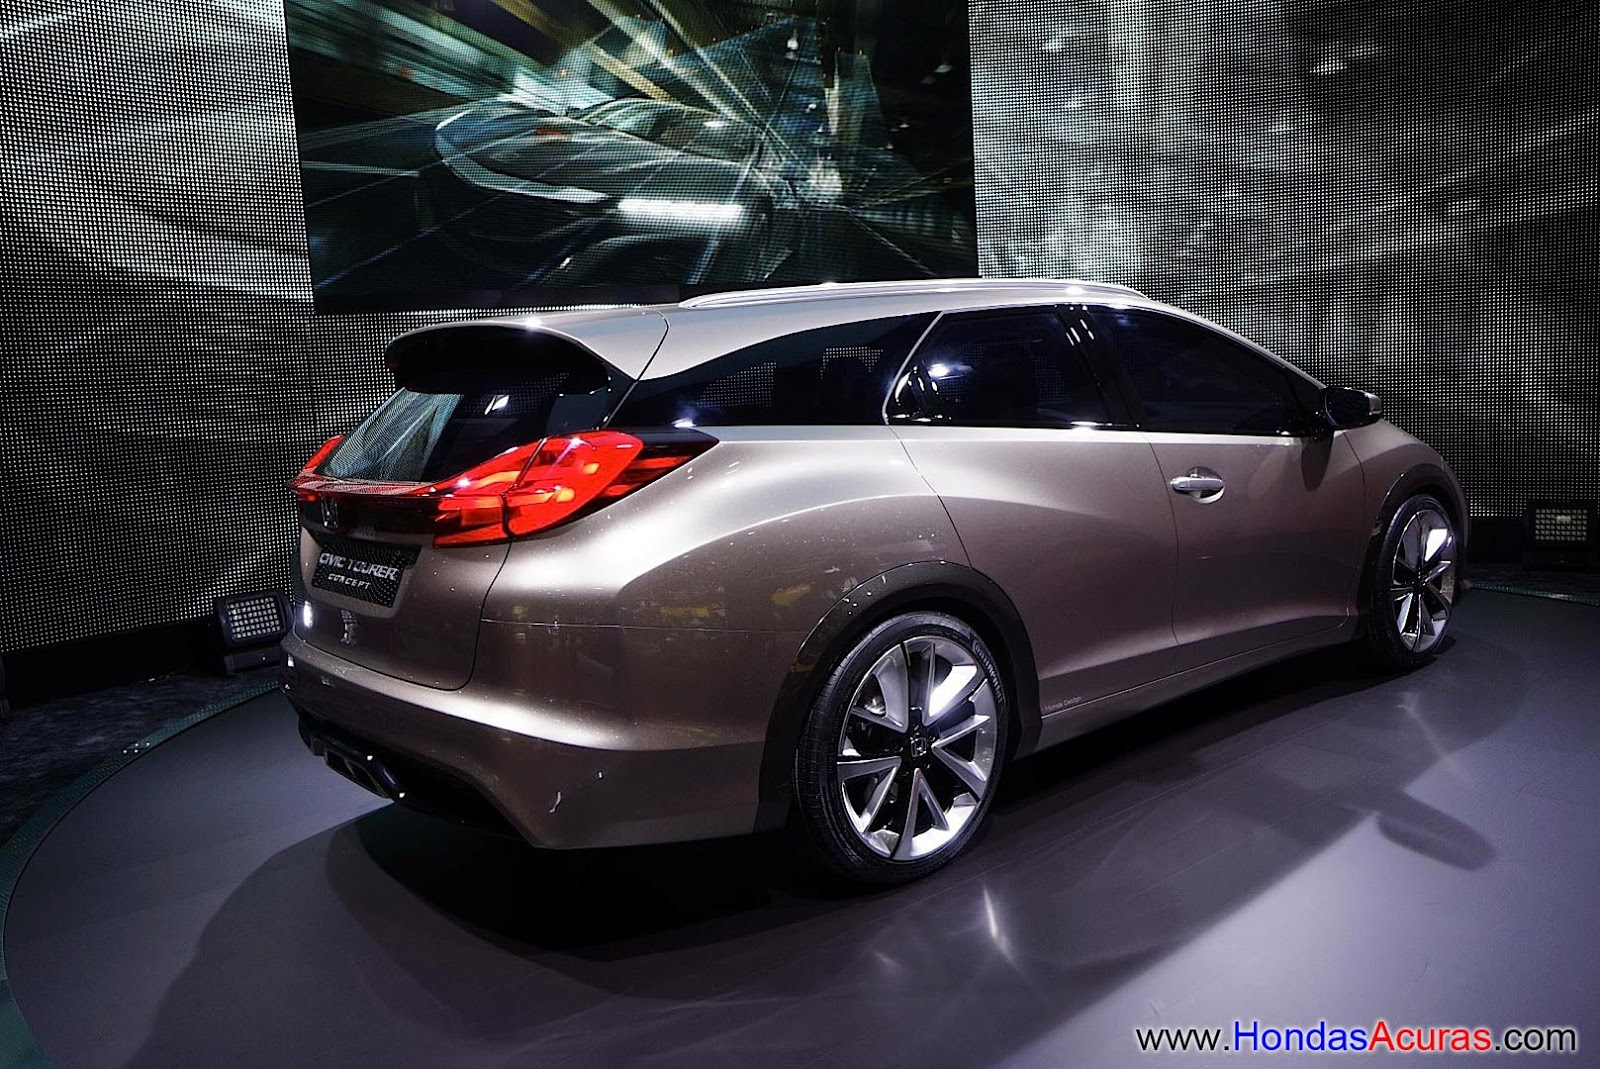 http://3.bp.blogspot.com/-Zbk-KnzoAnA/UTYvO-_cy-I/AAAAAAAAKDo/by0YkpycmC4/s1600/honda-civic-wagon-concept-looks-beautiful-in-geneva-live-photos_7-wallpaper.jpg